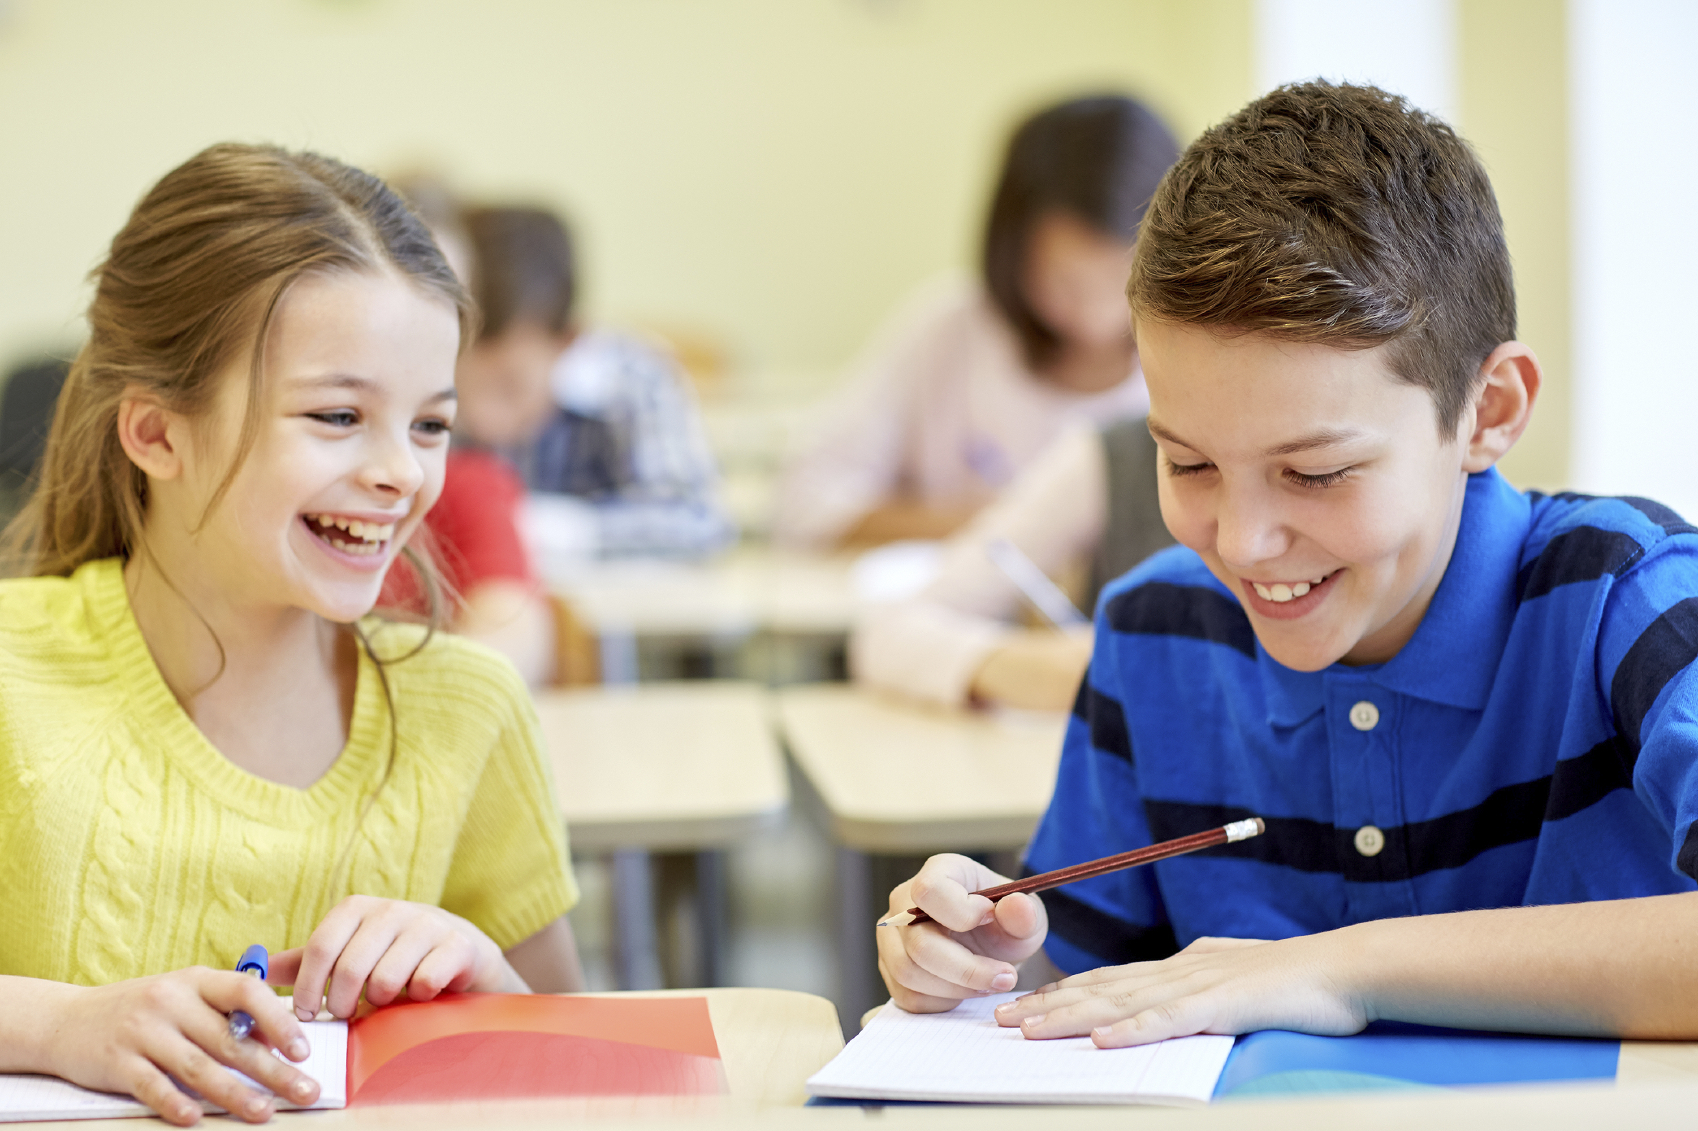 Girl and boy in classroom writing a story in exercise books and smiling